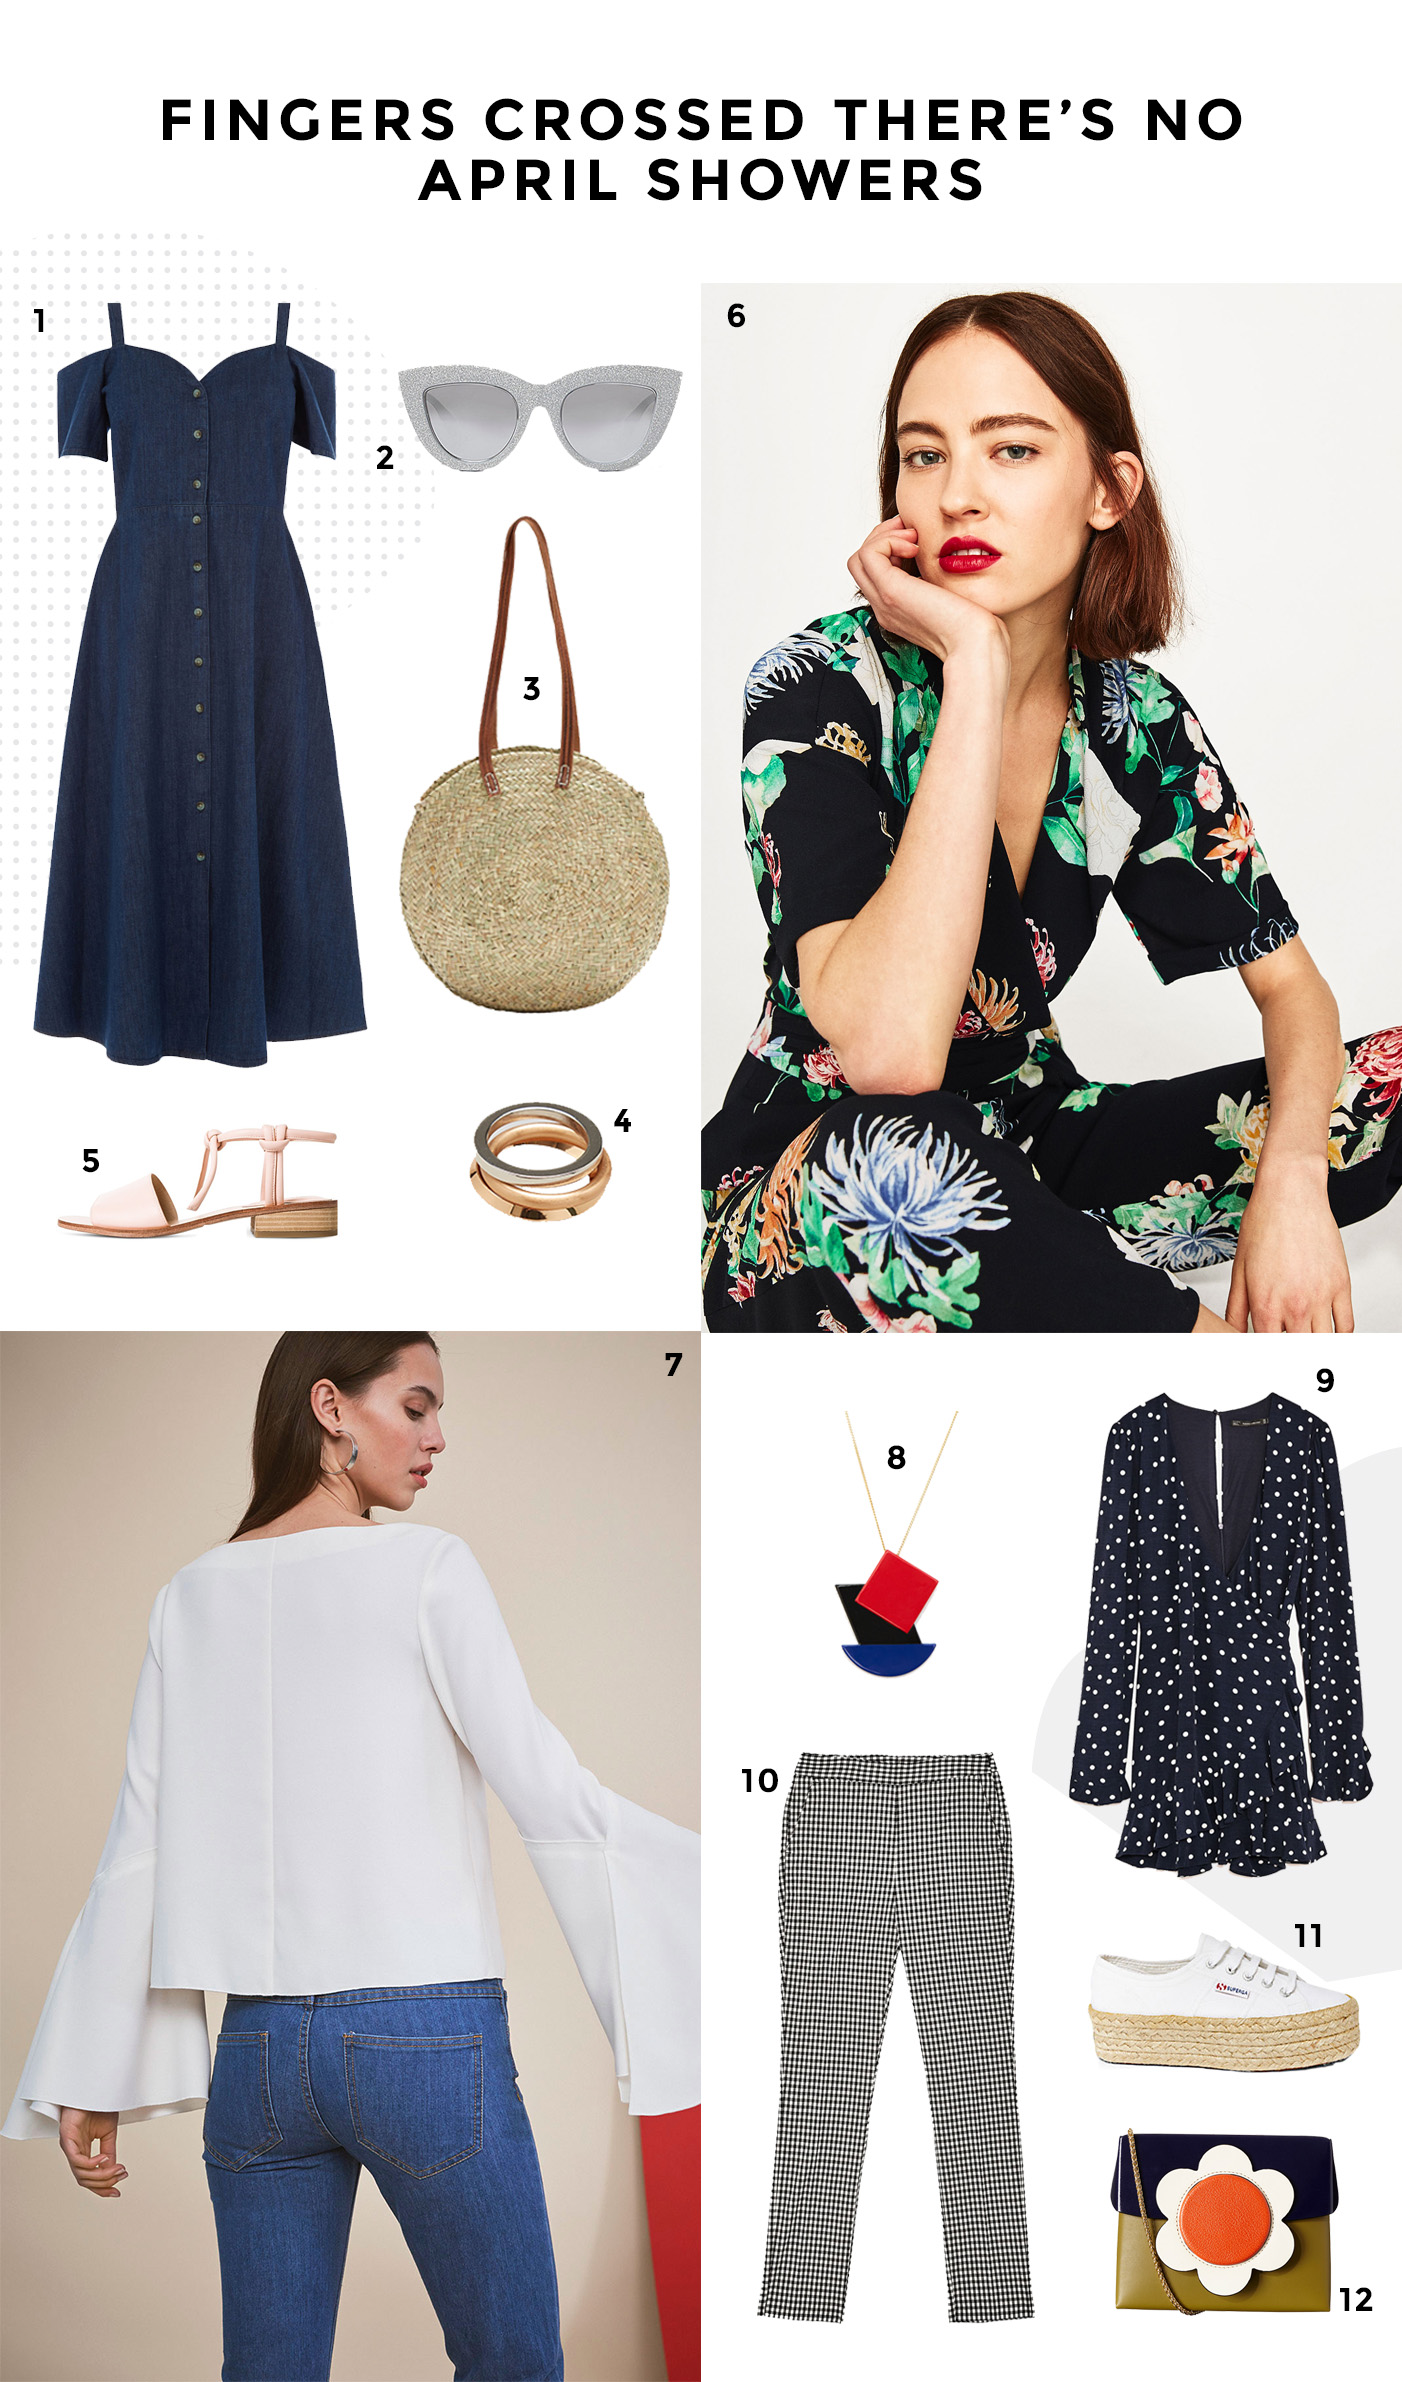 Here's April's wishlist featuring my favourite trends for the season, gingham, basket bags and flouncy sleeves.